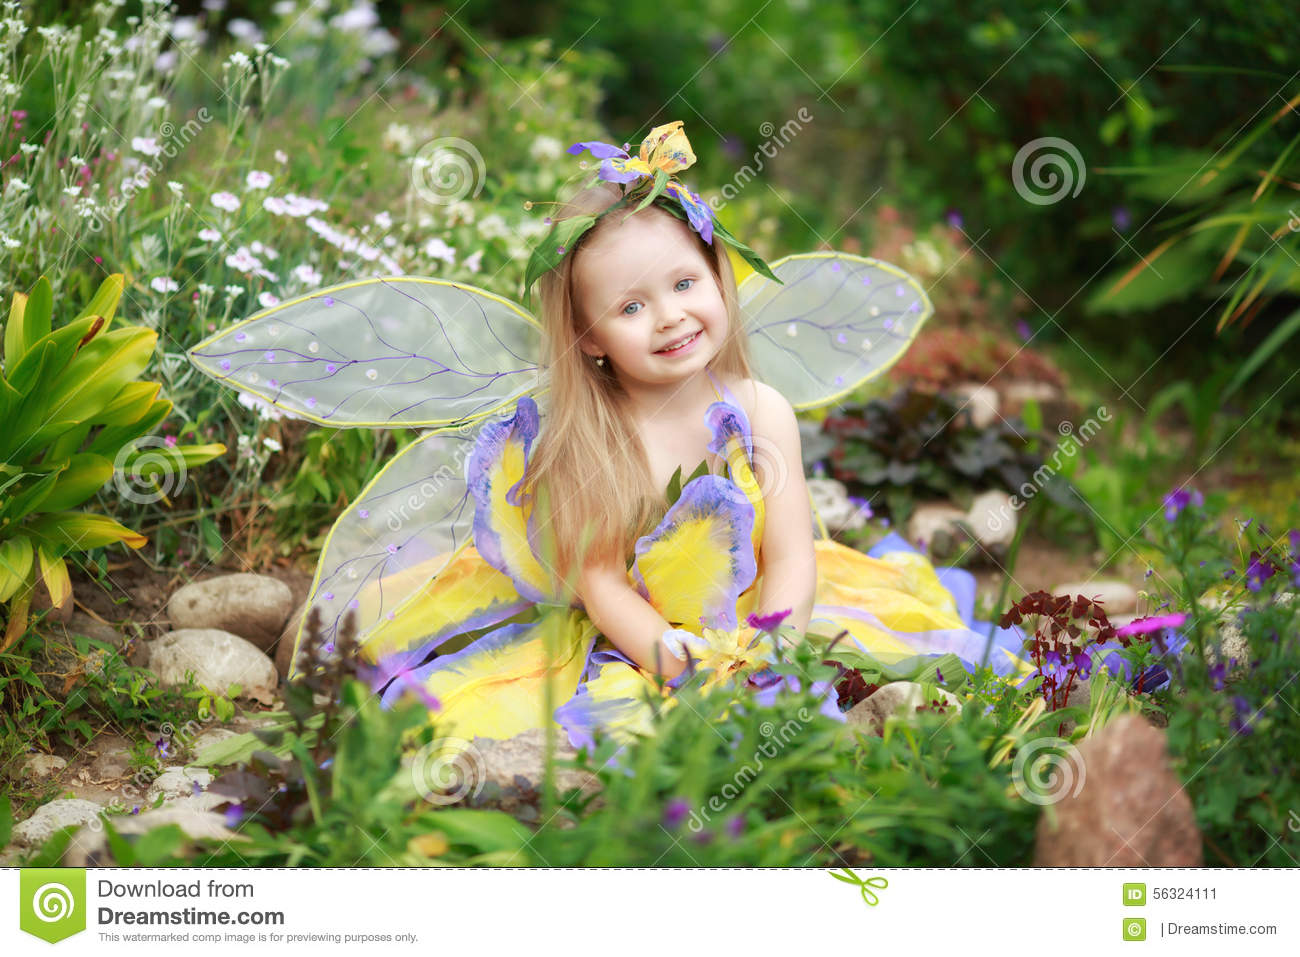 3d Animation Animals Wallpaper Child Girl Dressed As Fairy Stock Photo Image 56324111